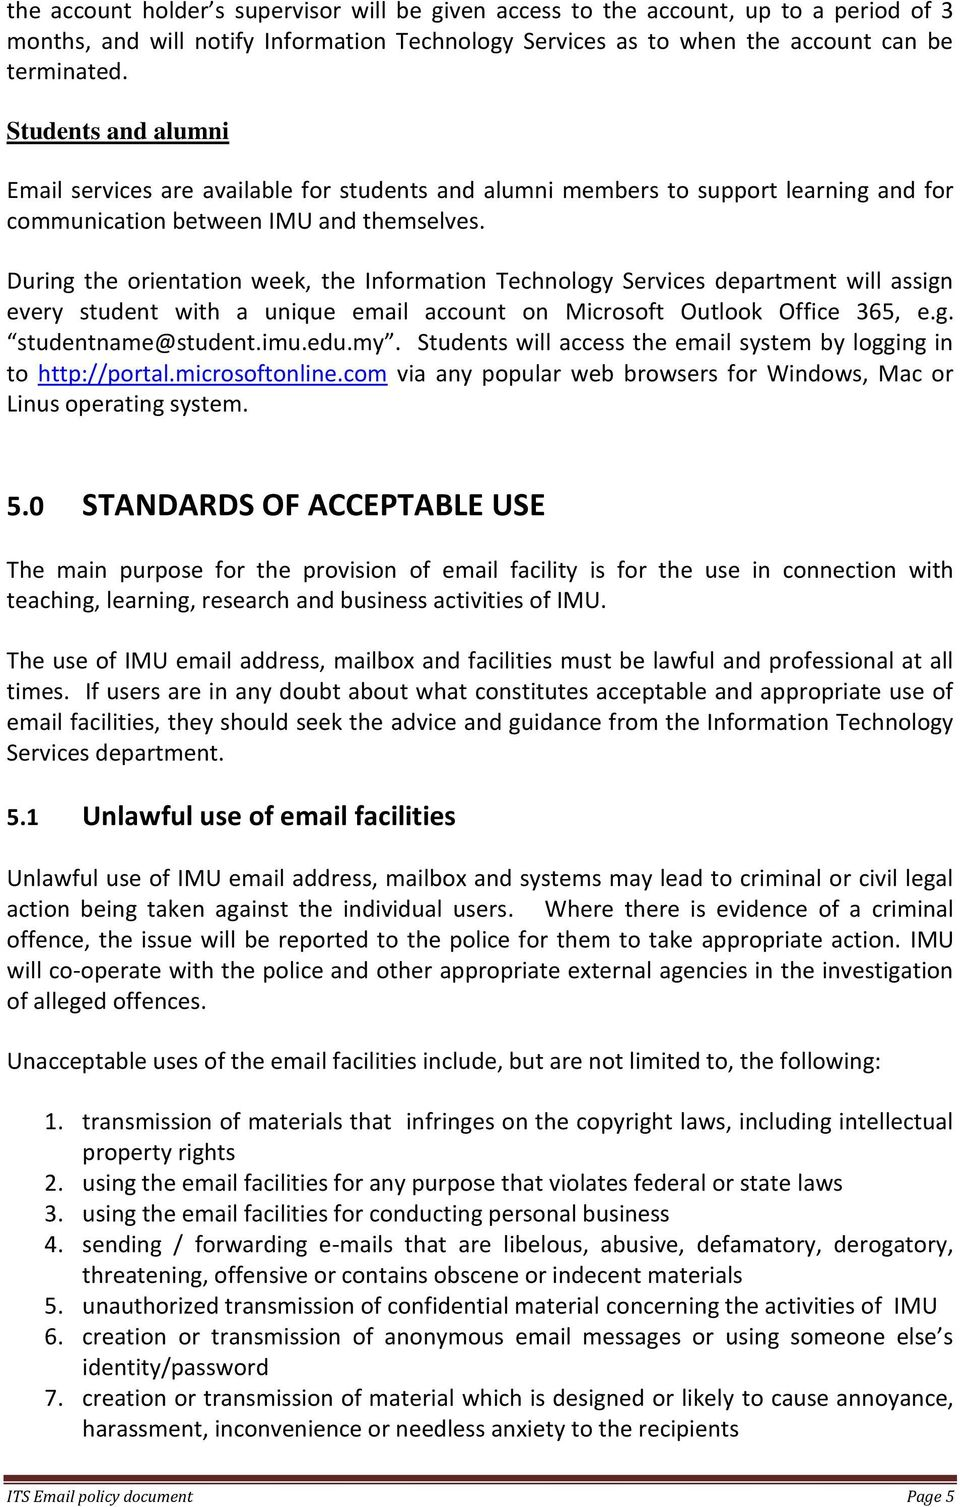 During the orientation week, the Information Technology Services department will assign every student with a unique email account on Microsoft Outlook Office 365, e.g. studentname@student.imu.edu.my.